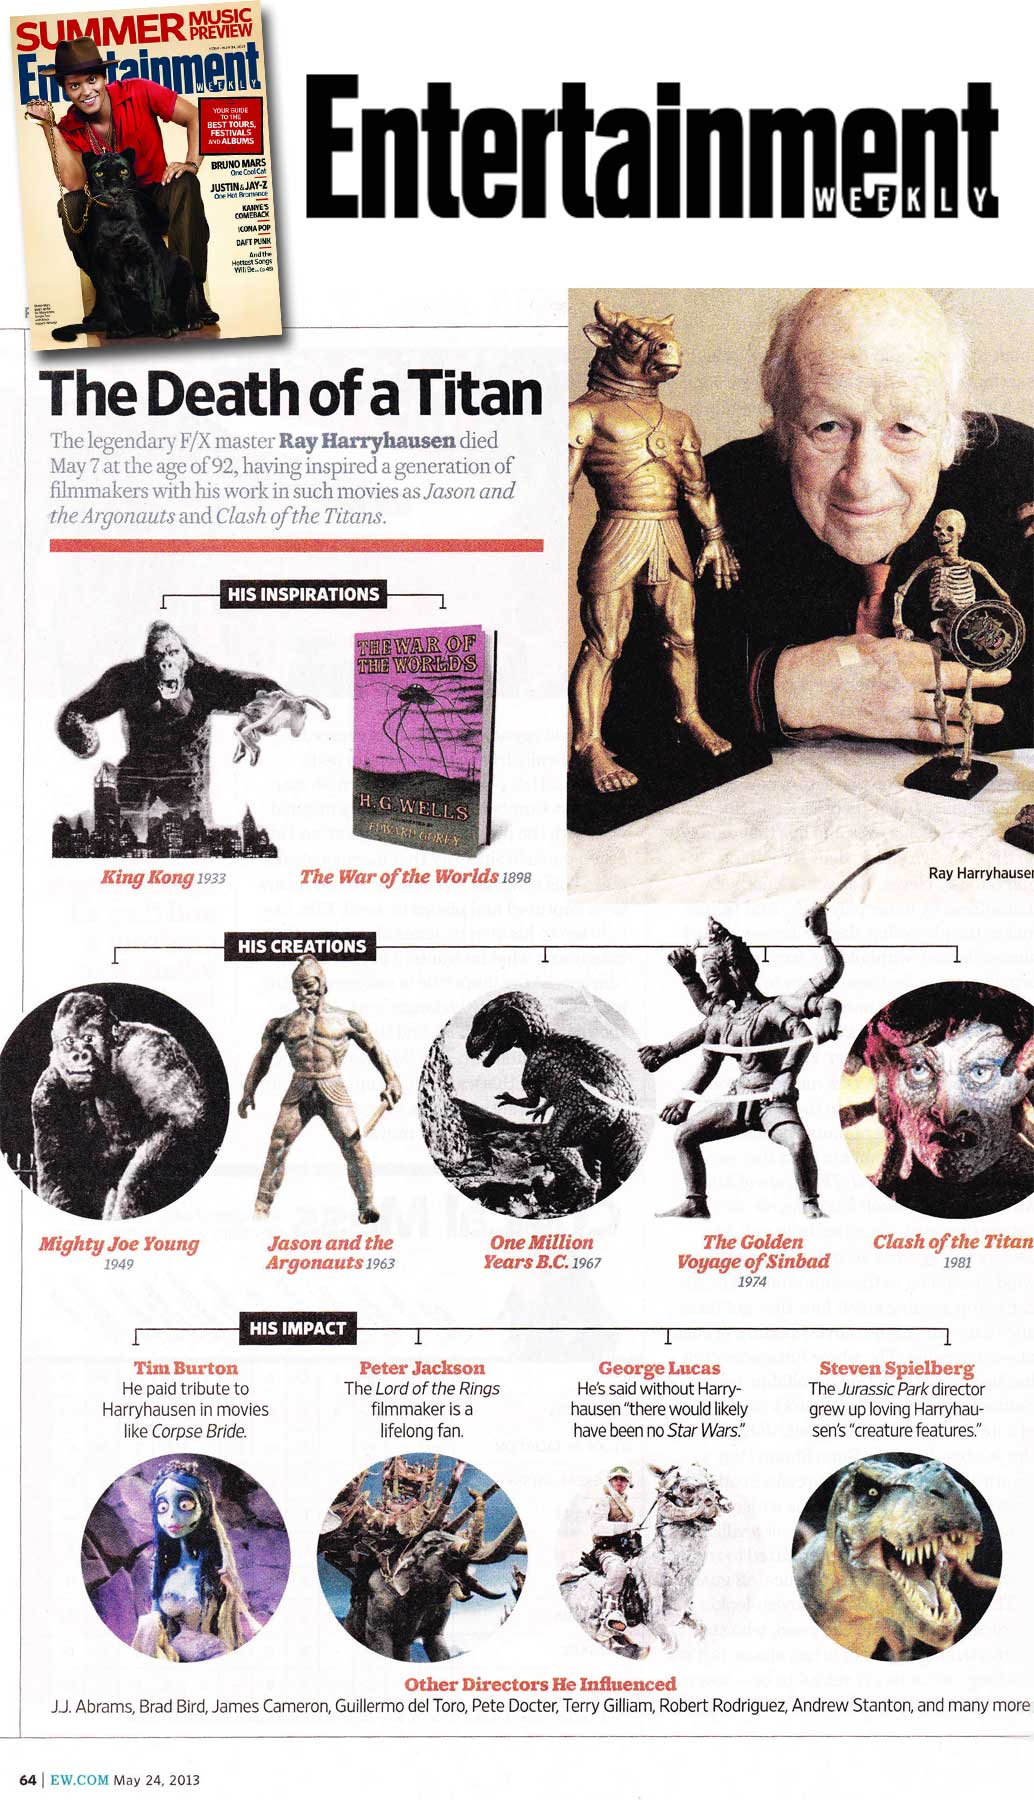 Entertainment Weekly Featured A Retrospective of Ray Harryhausen